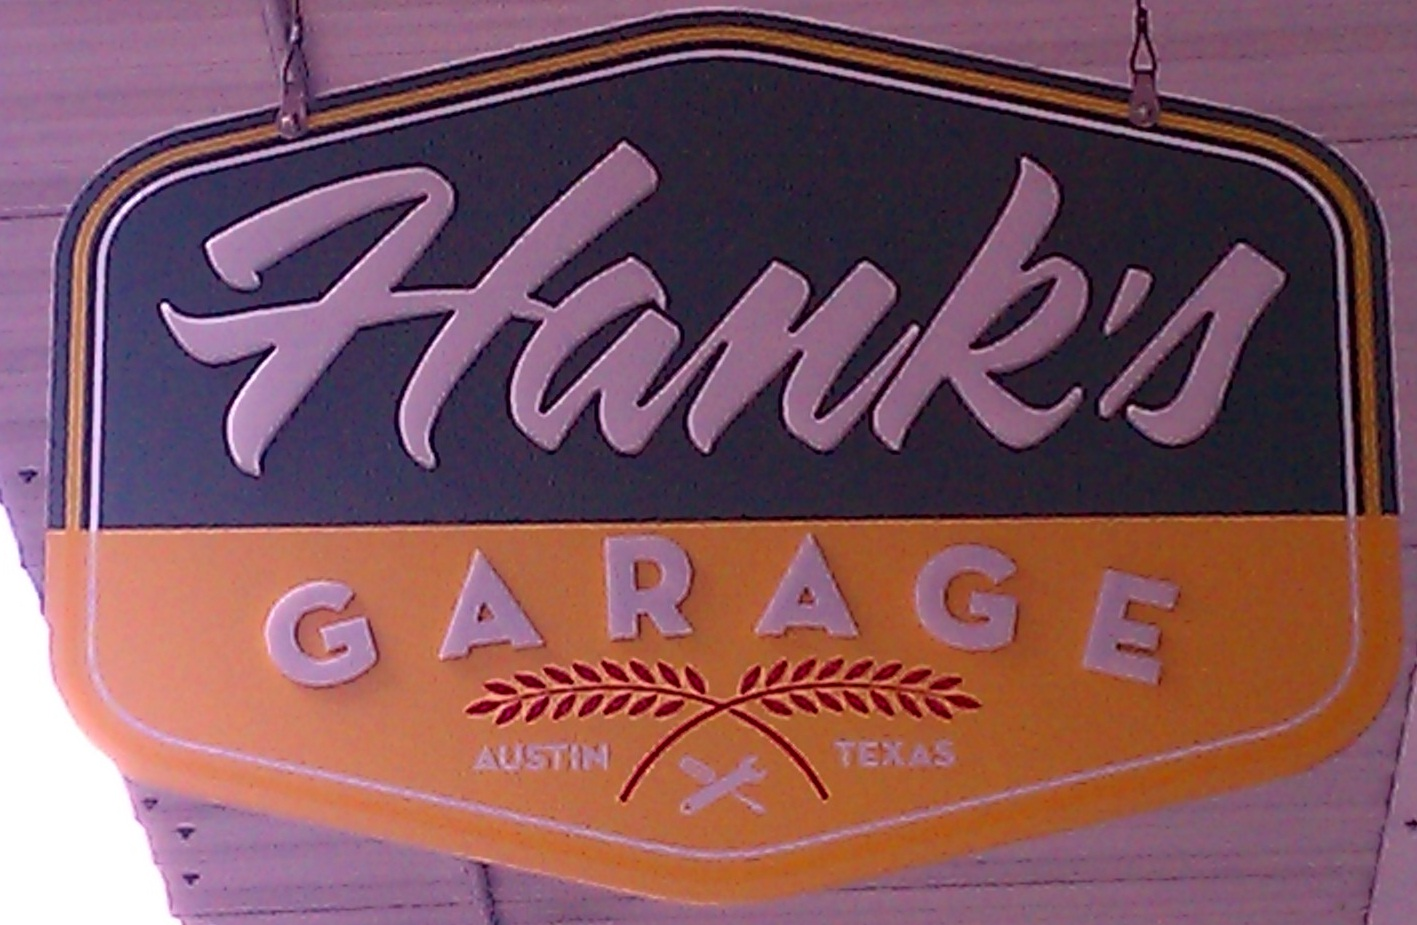 Hank's: From Garage to Entrepreneur's Dream